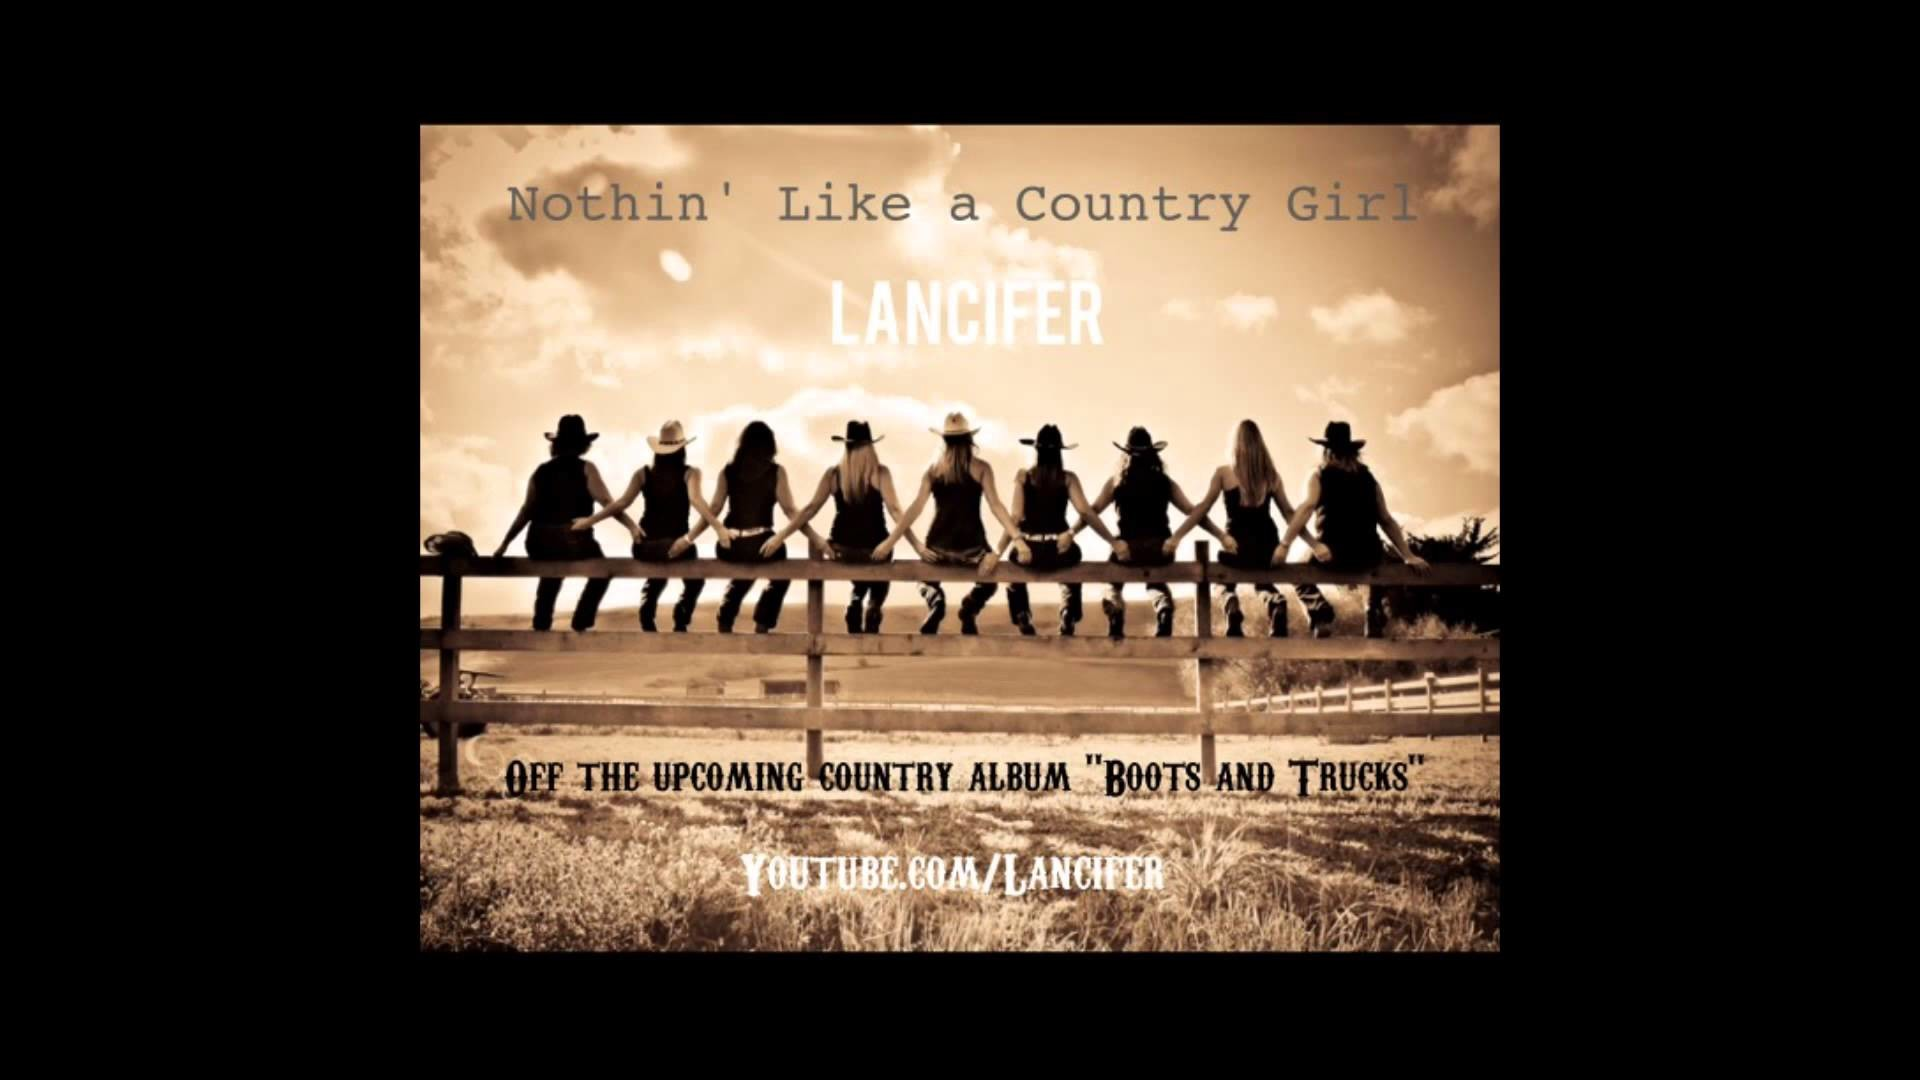 """Nothin' Like a Country Girl – Lancifer (from upcoming NEW album """"Boots and  Trucks"""")"""